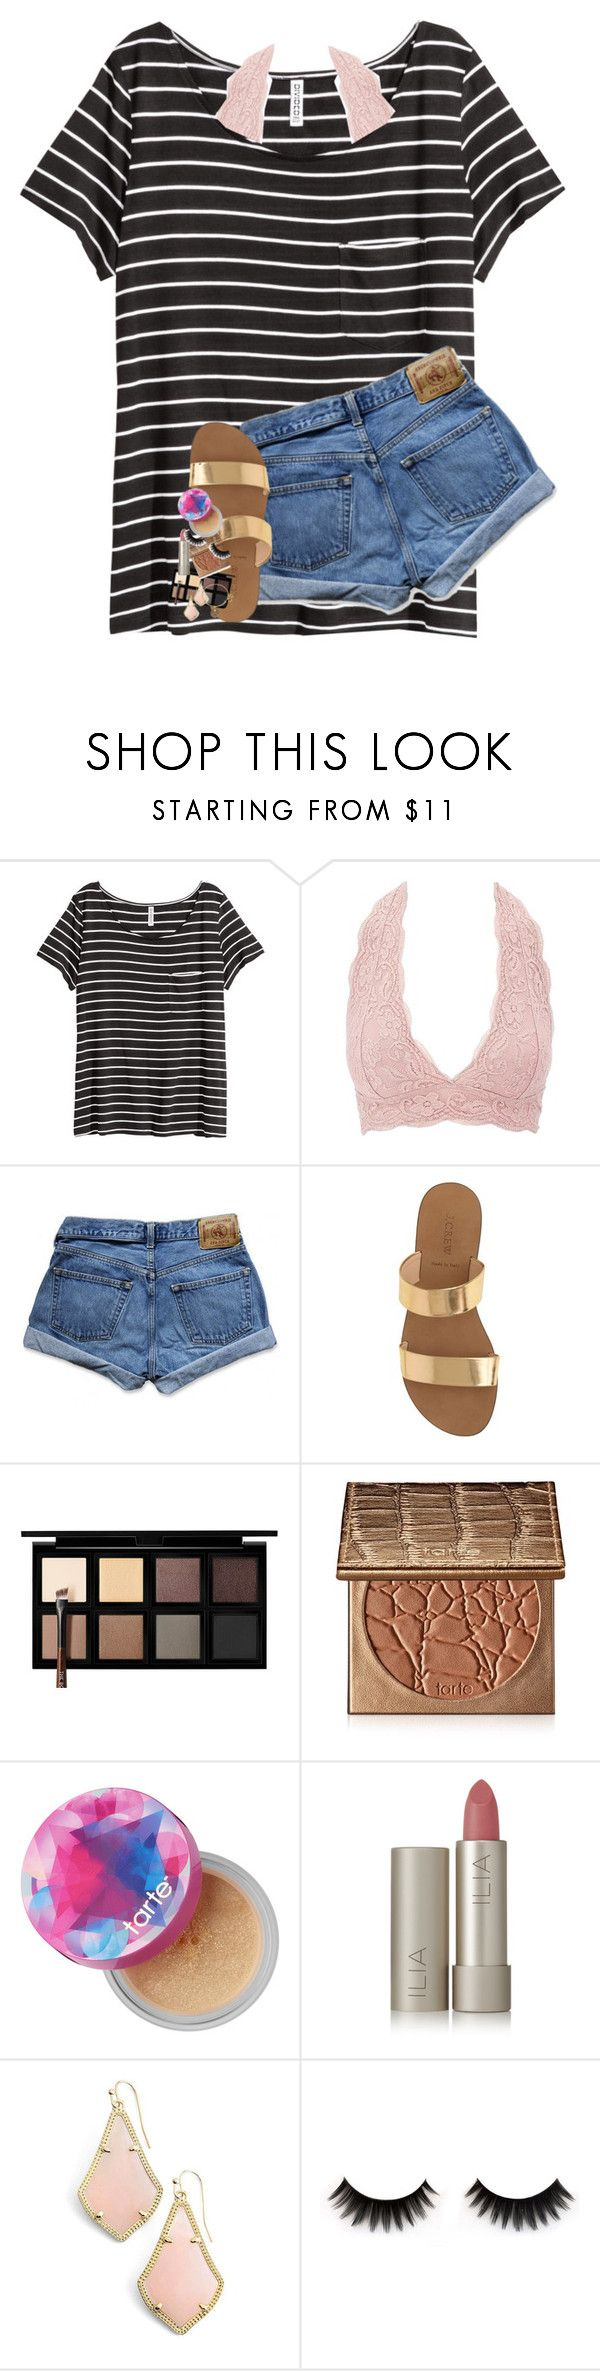 """""""USC IS DOWN BY 11"""" by lindsaygreys ❤ liked on Polyvore featuring H&M, Charlotte Russe, Abercrombie & Fitch, J.Crew, Down to Earth, tarte, Ilia, Kendra Scott and Alex and Ani"""